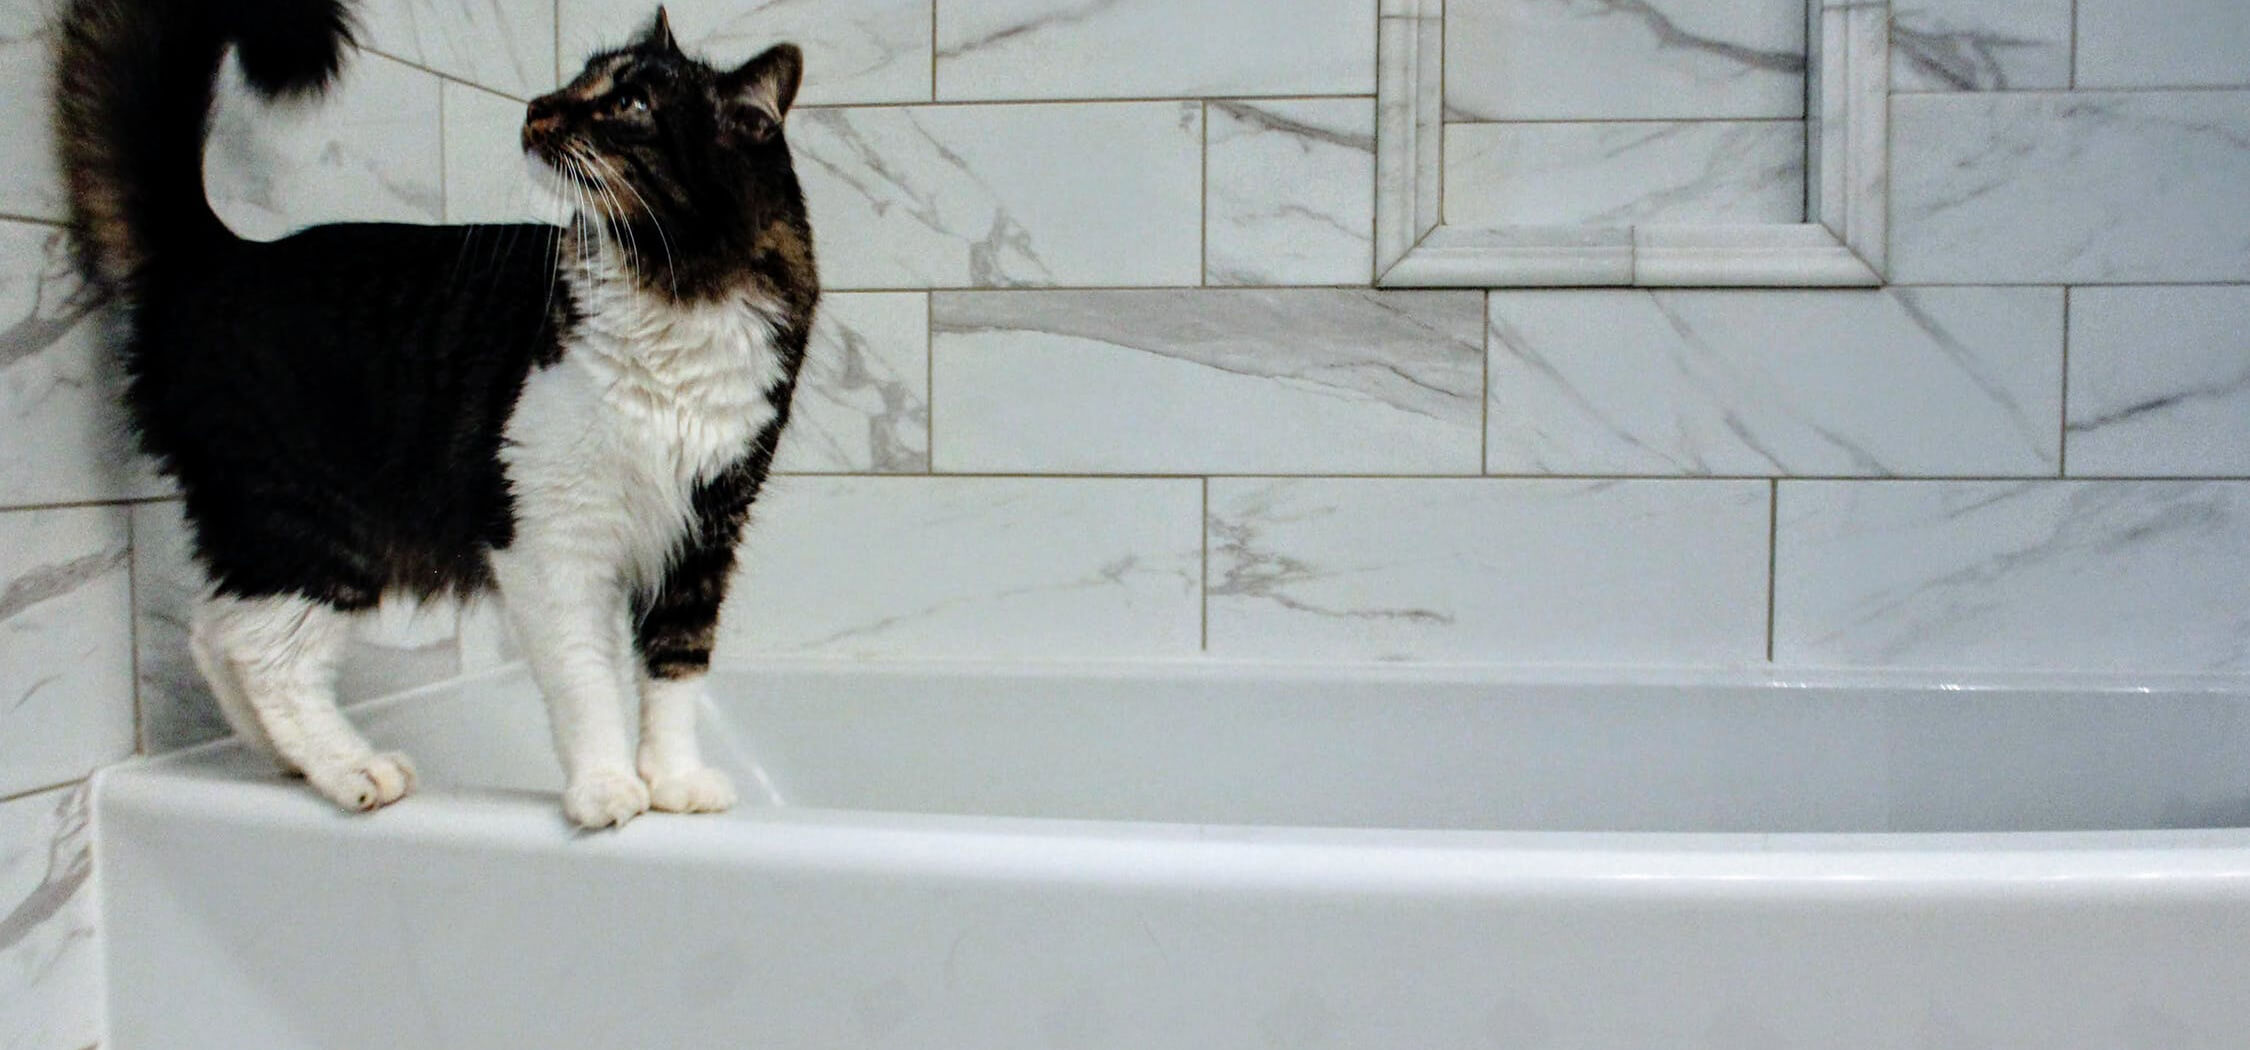 how-to-update-your-bathroom-on-the-cheap by-resurfacing-1.jpeg